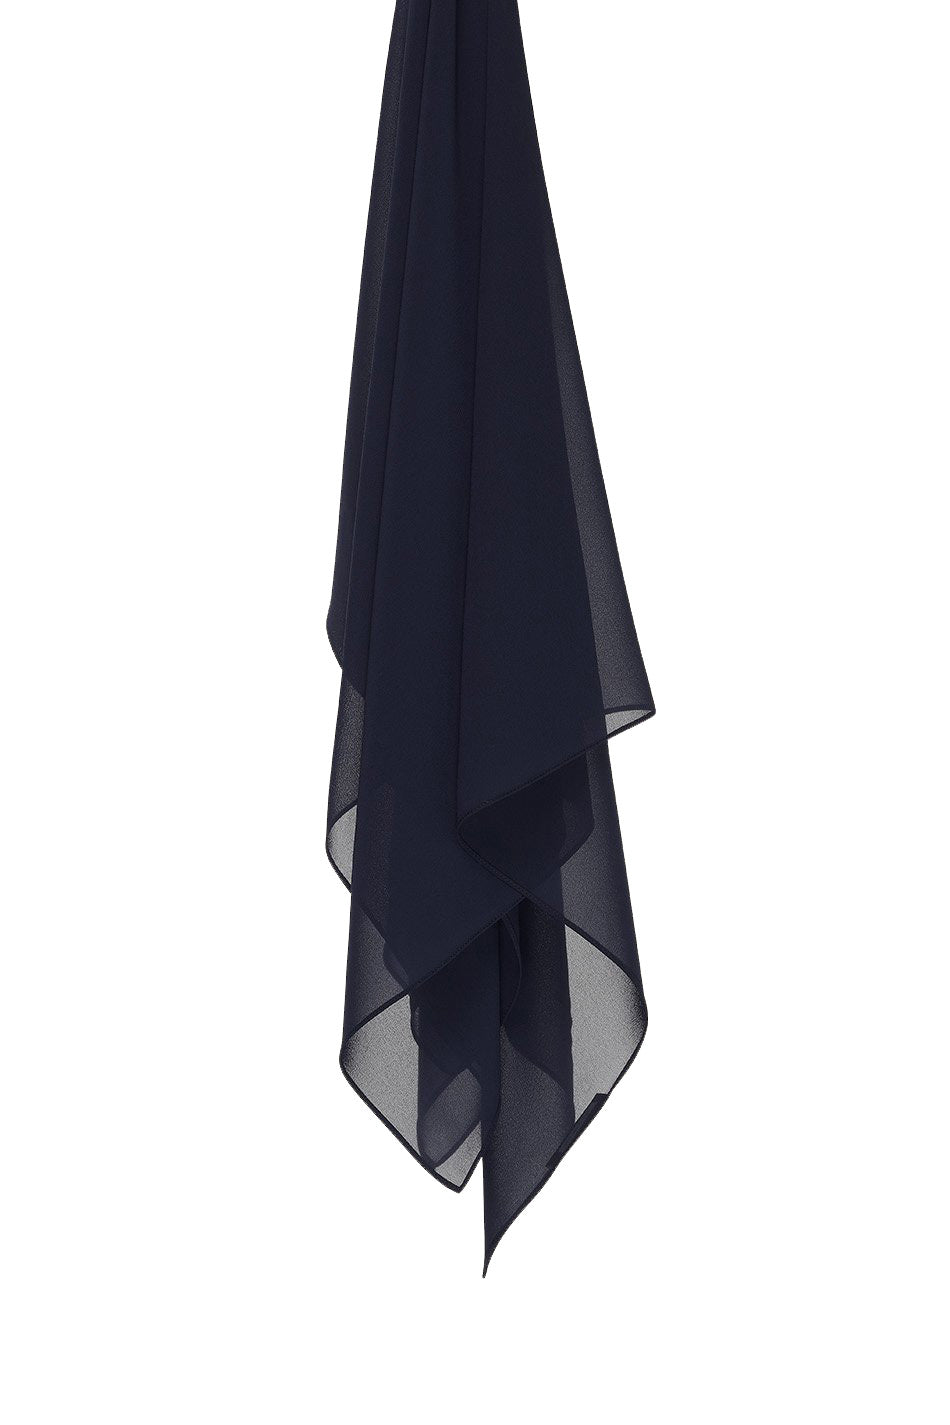 Everyday Chiffon Hijab in Navy